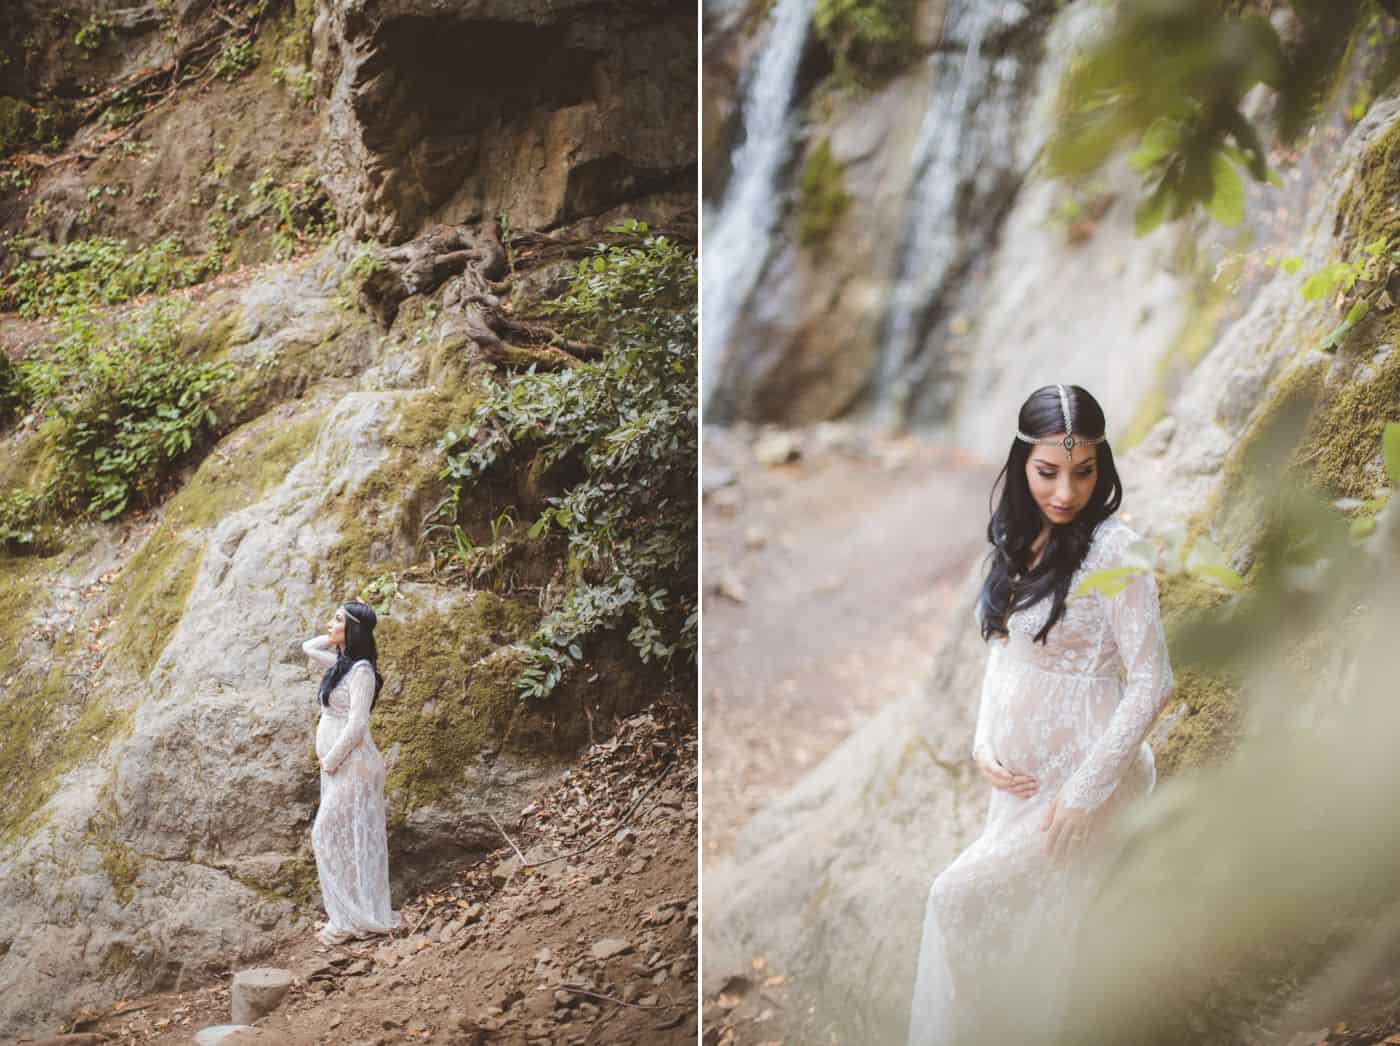 Vanessa Hicks' photo poses for maternity sessions typically include the scenic waterfalls of Hawaii